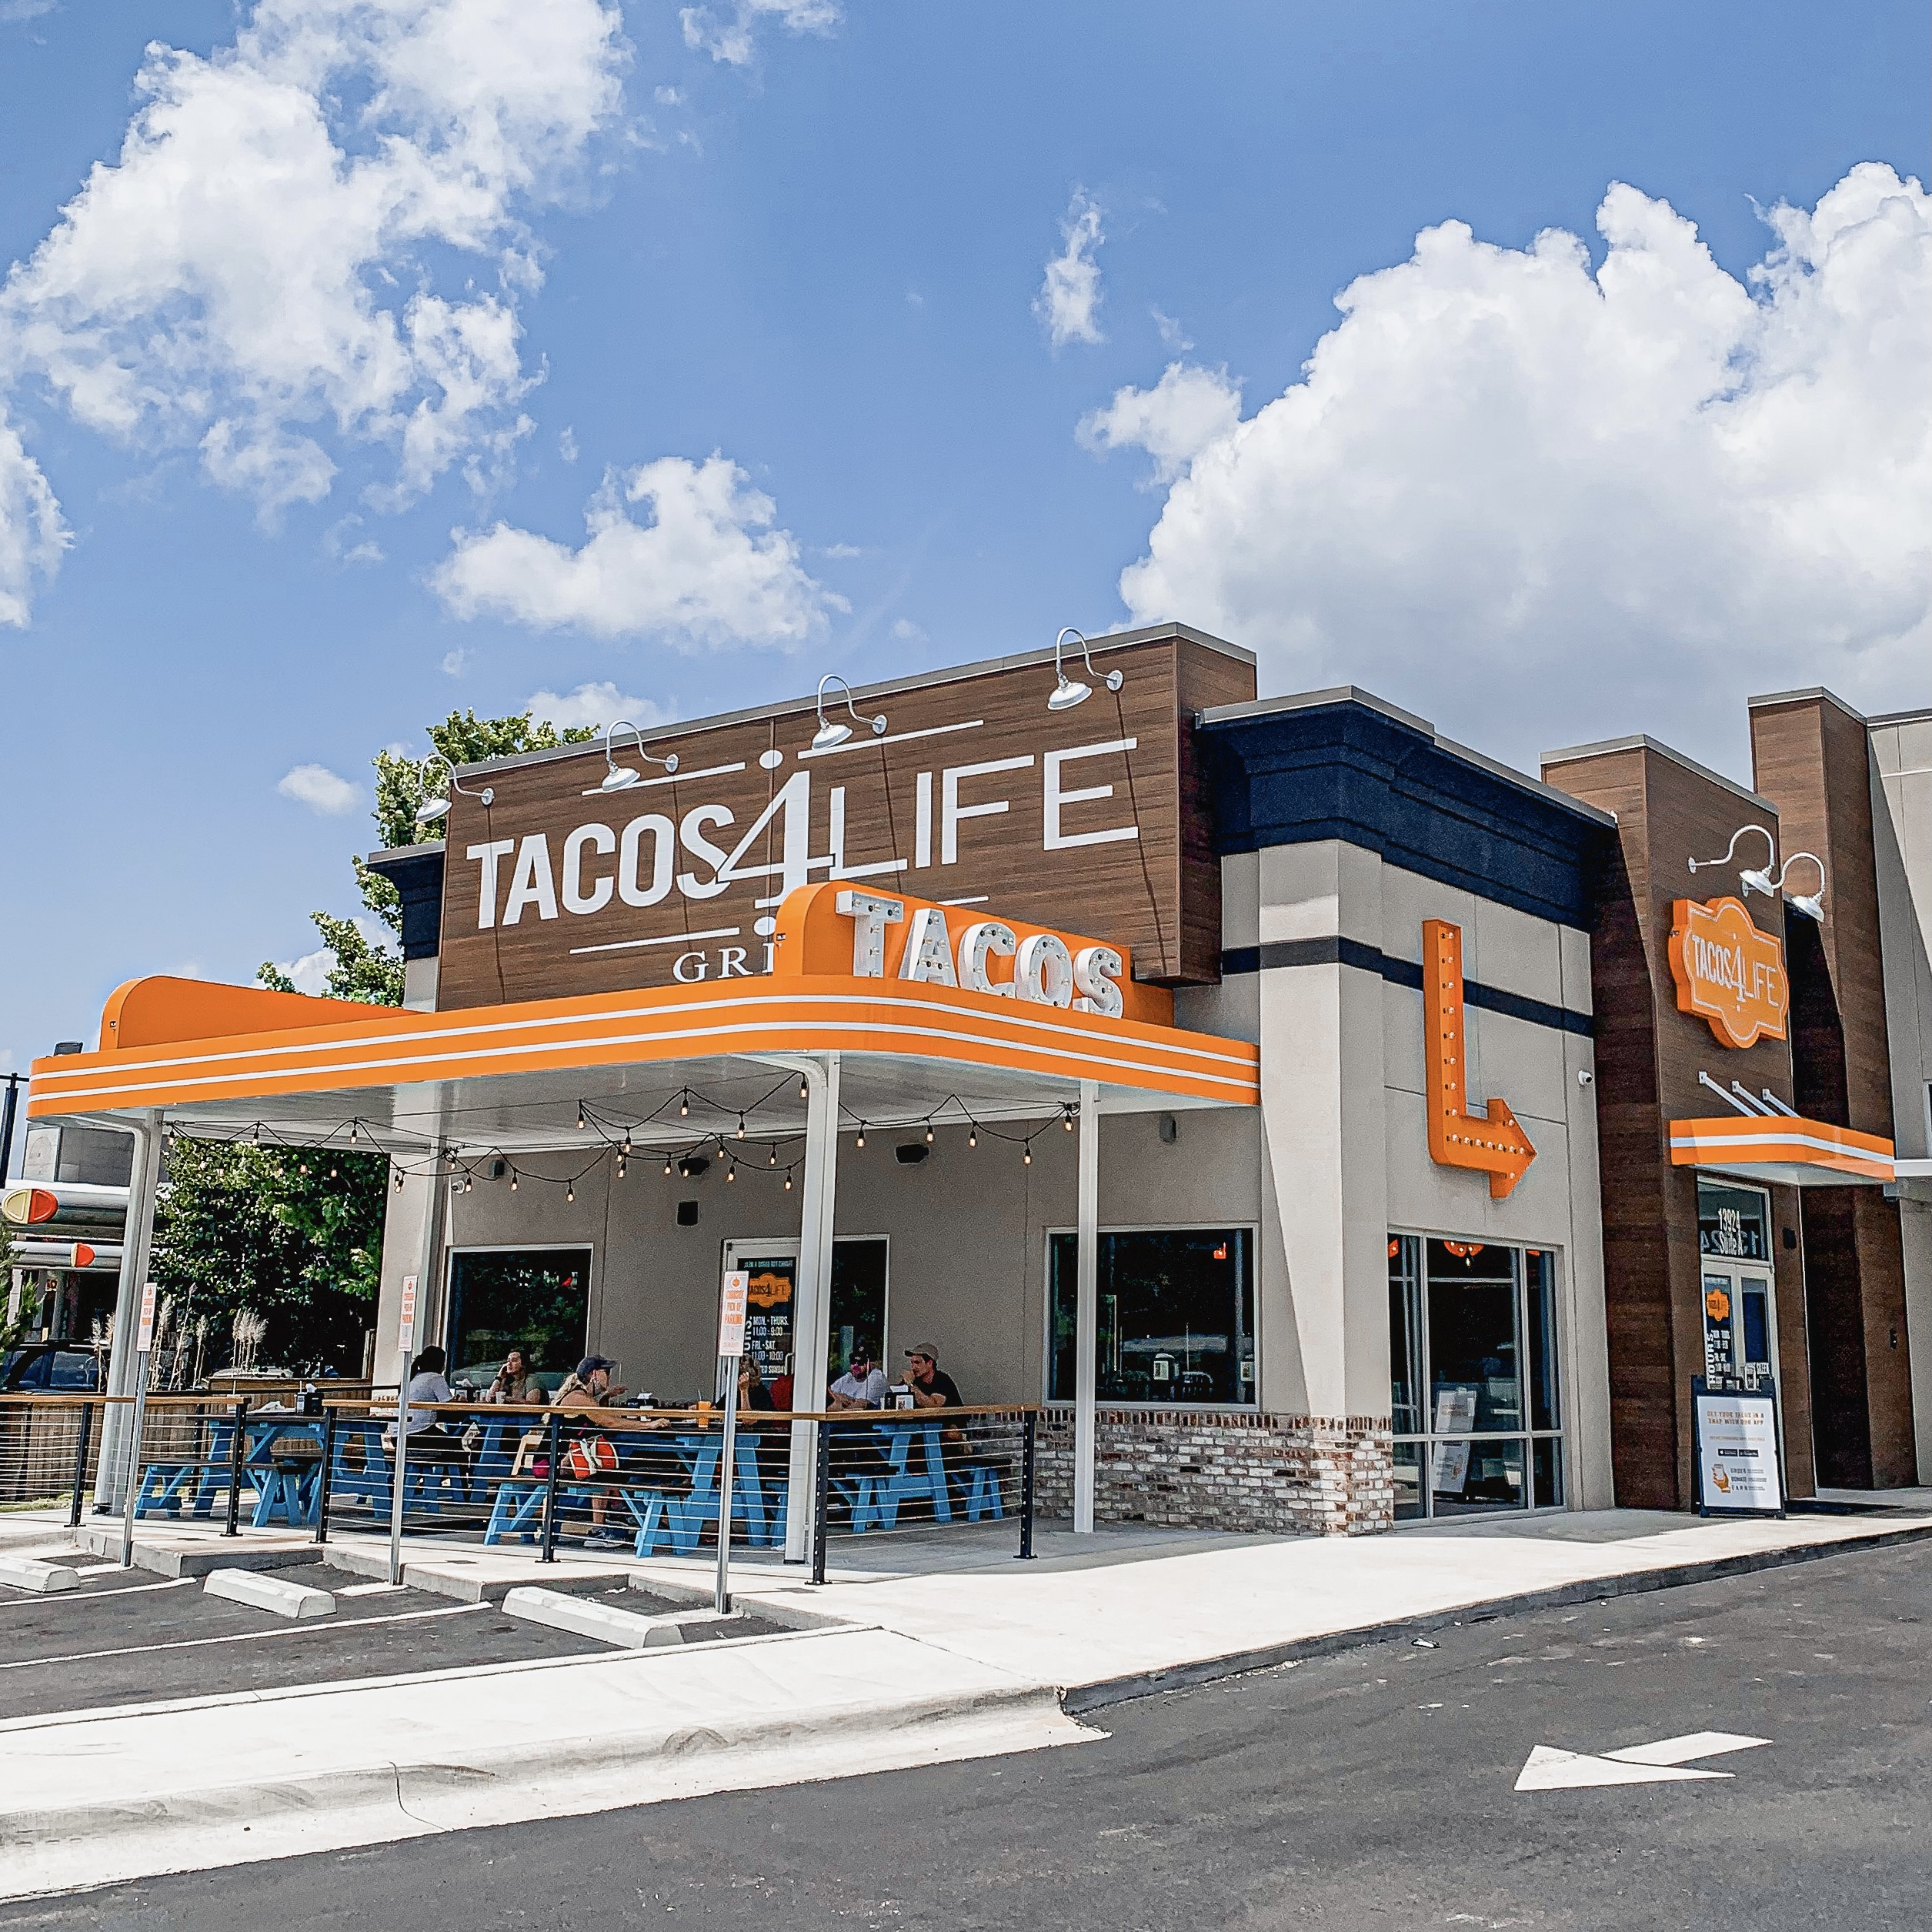 Tacos 4 Life in West Little Rock, AR on Cantrell Rd.